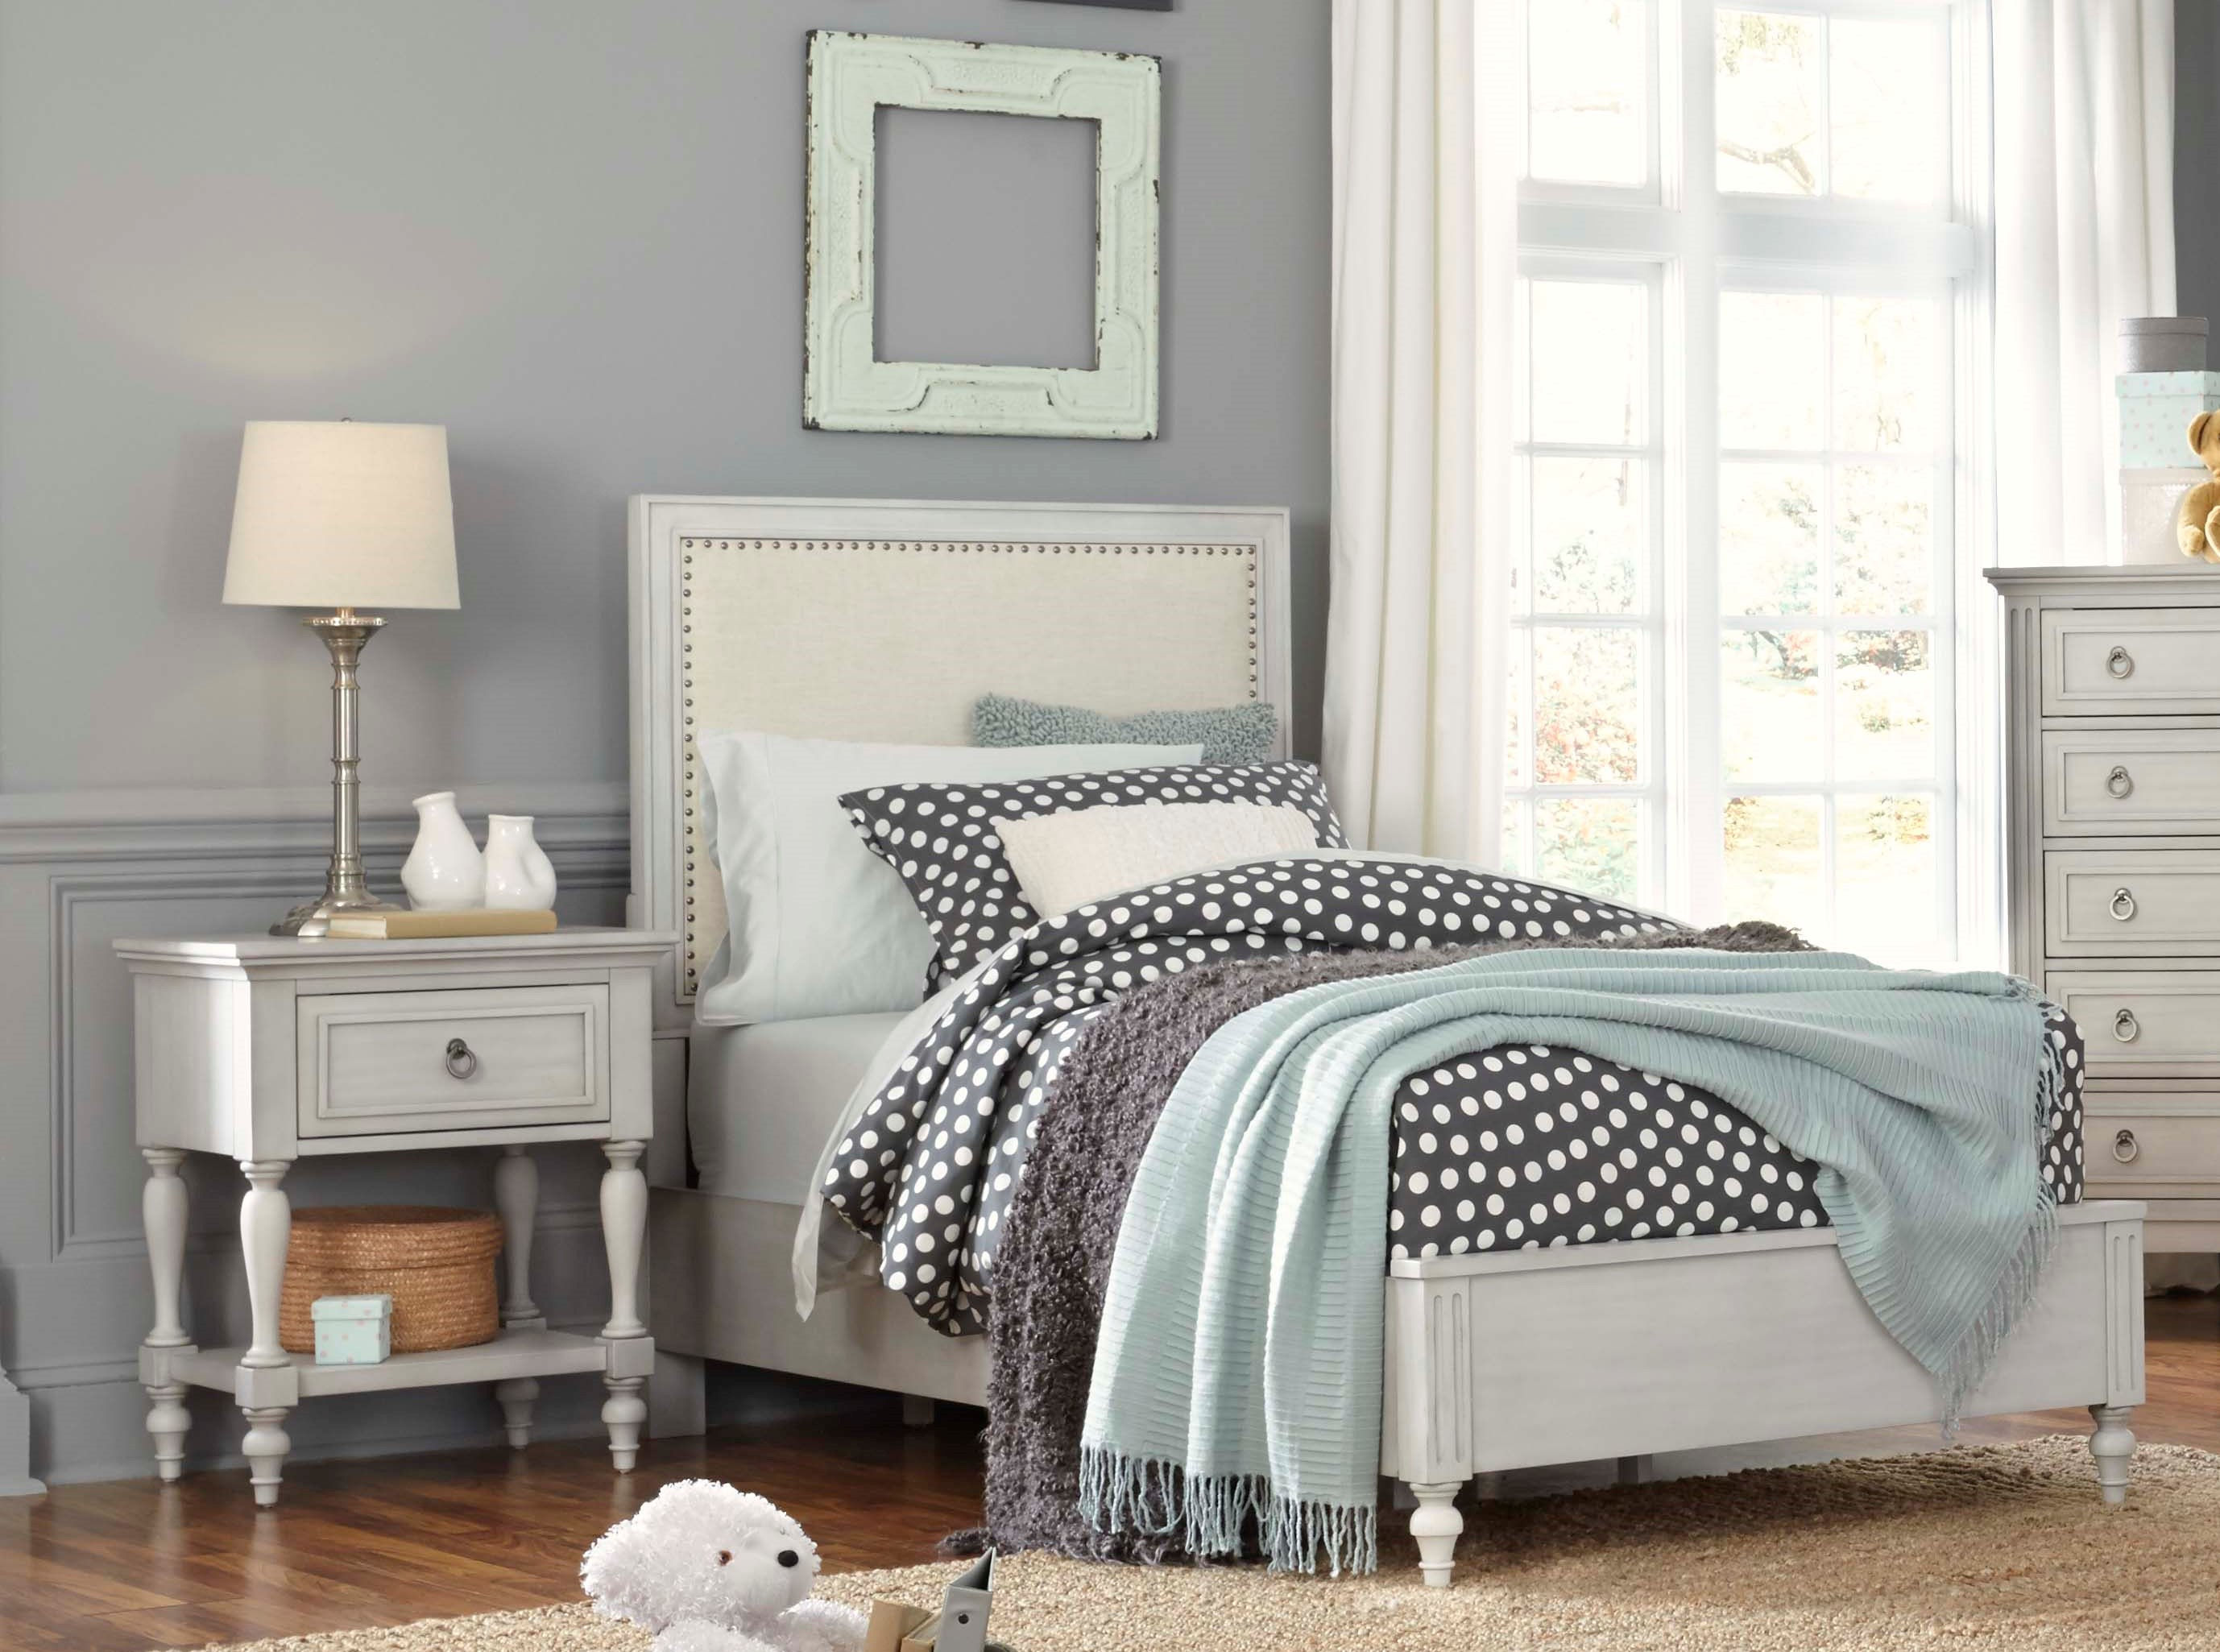 Standard Furniture Sarah White 2pc Bedroom Set with Twin Panel Bed